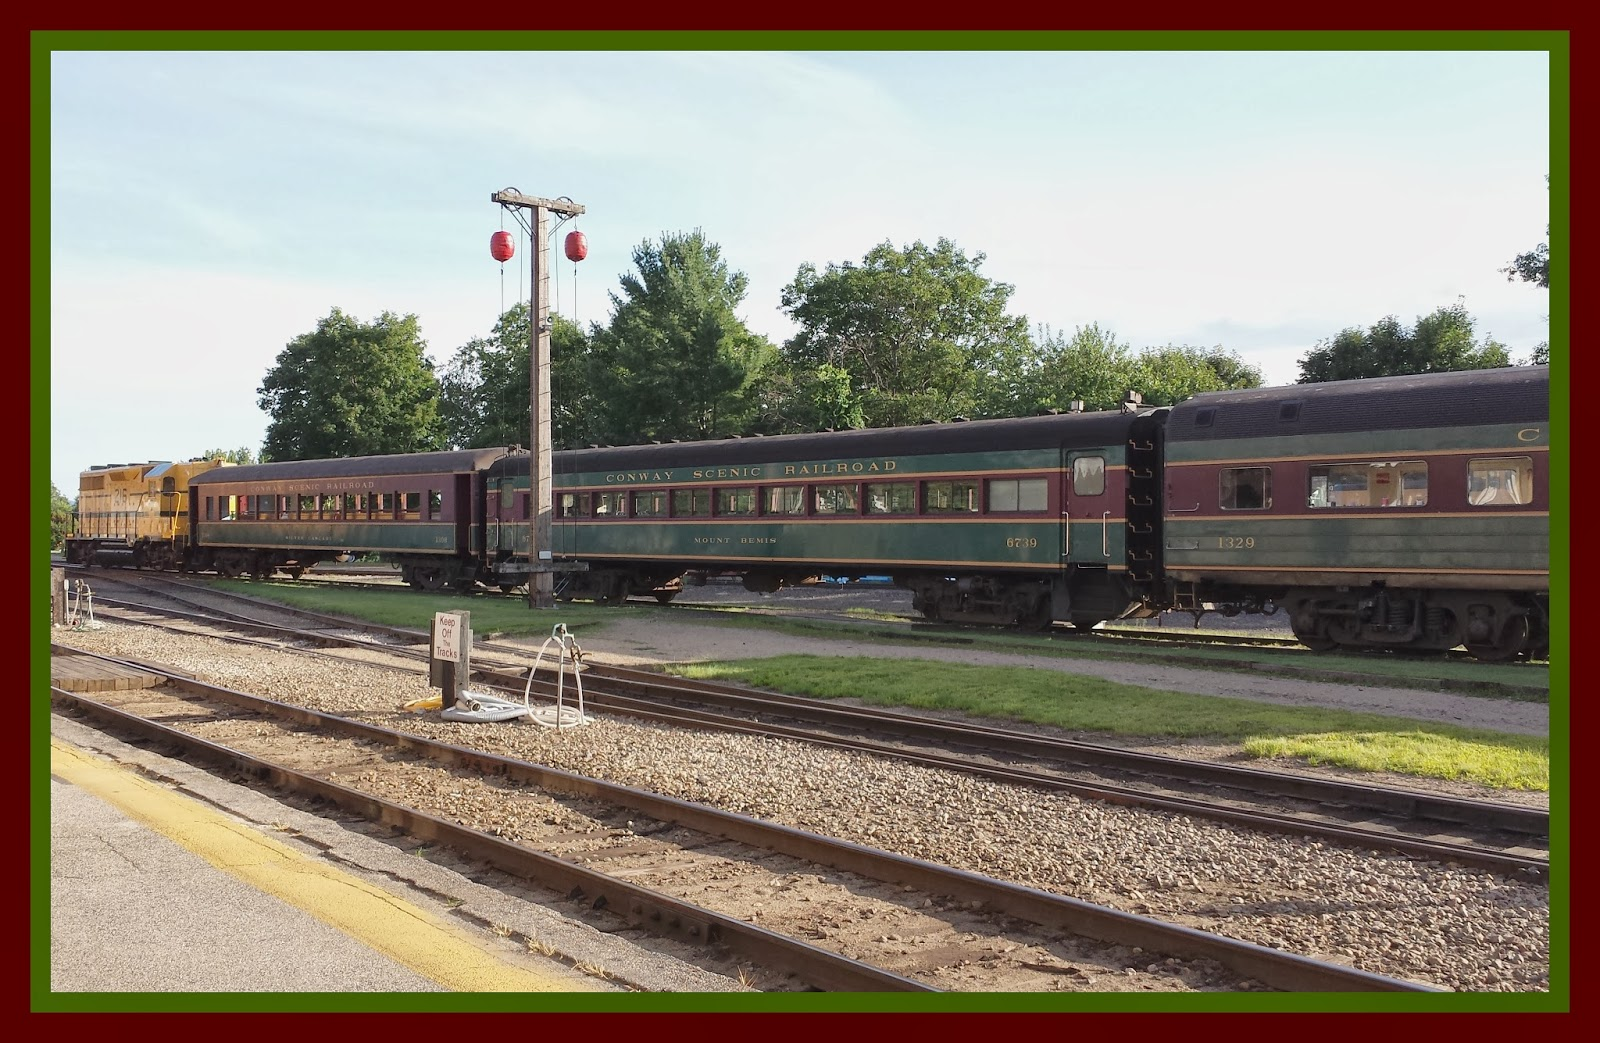 Conway Scenic Railroad North Conway Nh ⋆ The Stuff Of